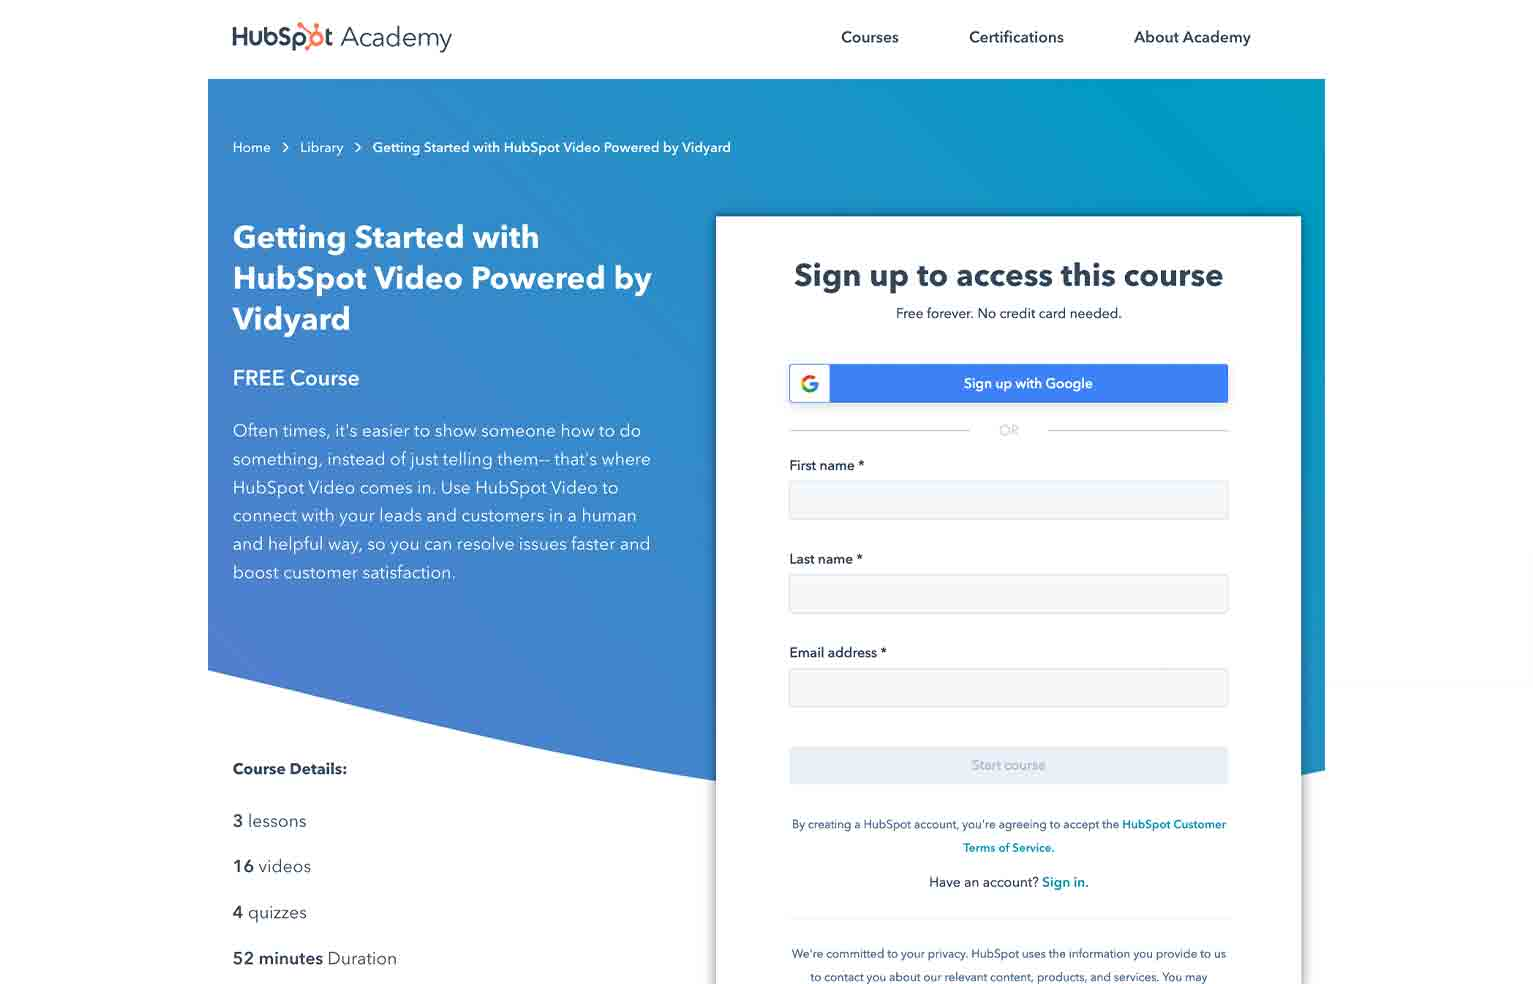 HubSpot Academy offers how-to courses for its product as well as general marketing topics and some of those are in partnership with other companies, such as this one with Vidyard.